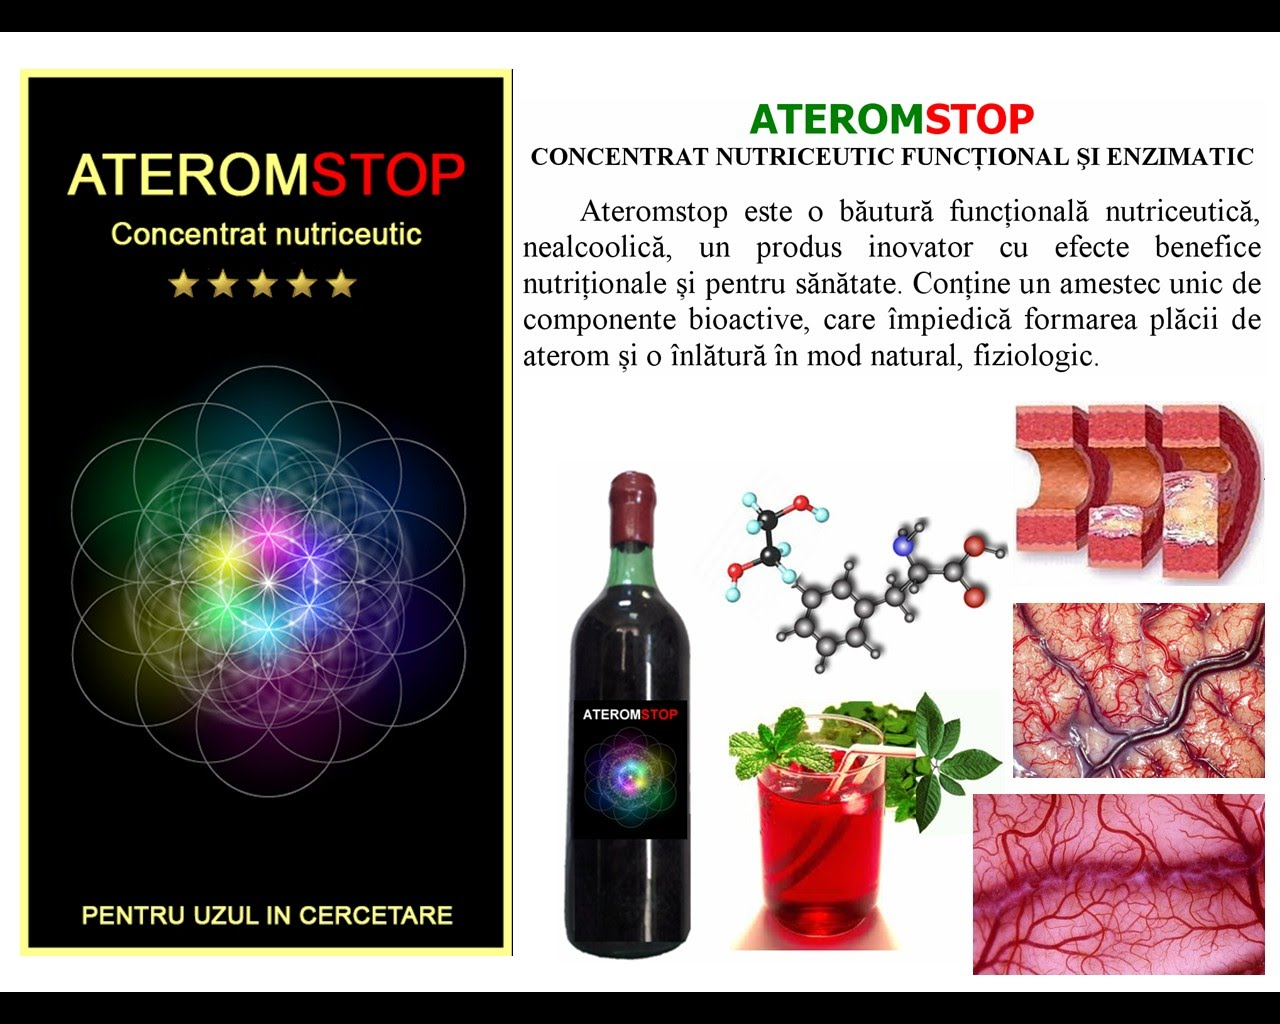 https://sites.google.com/site/consultantabiologica/about-us/ATEROMSTOP.jpg